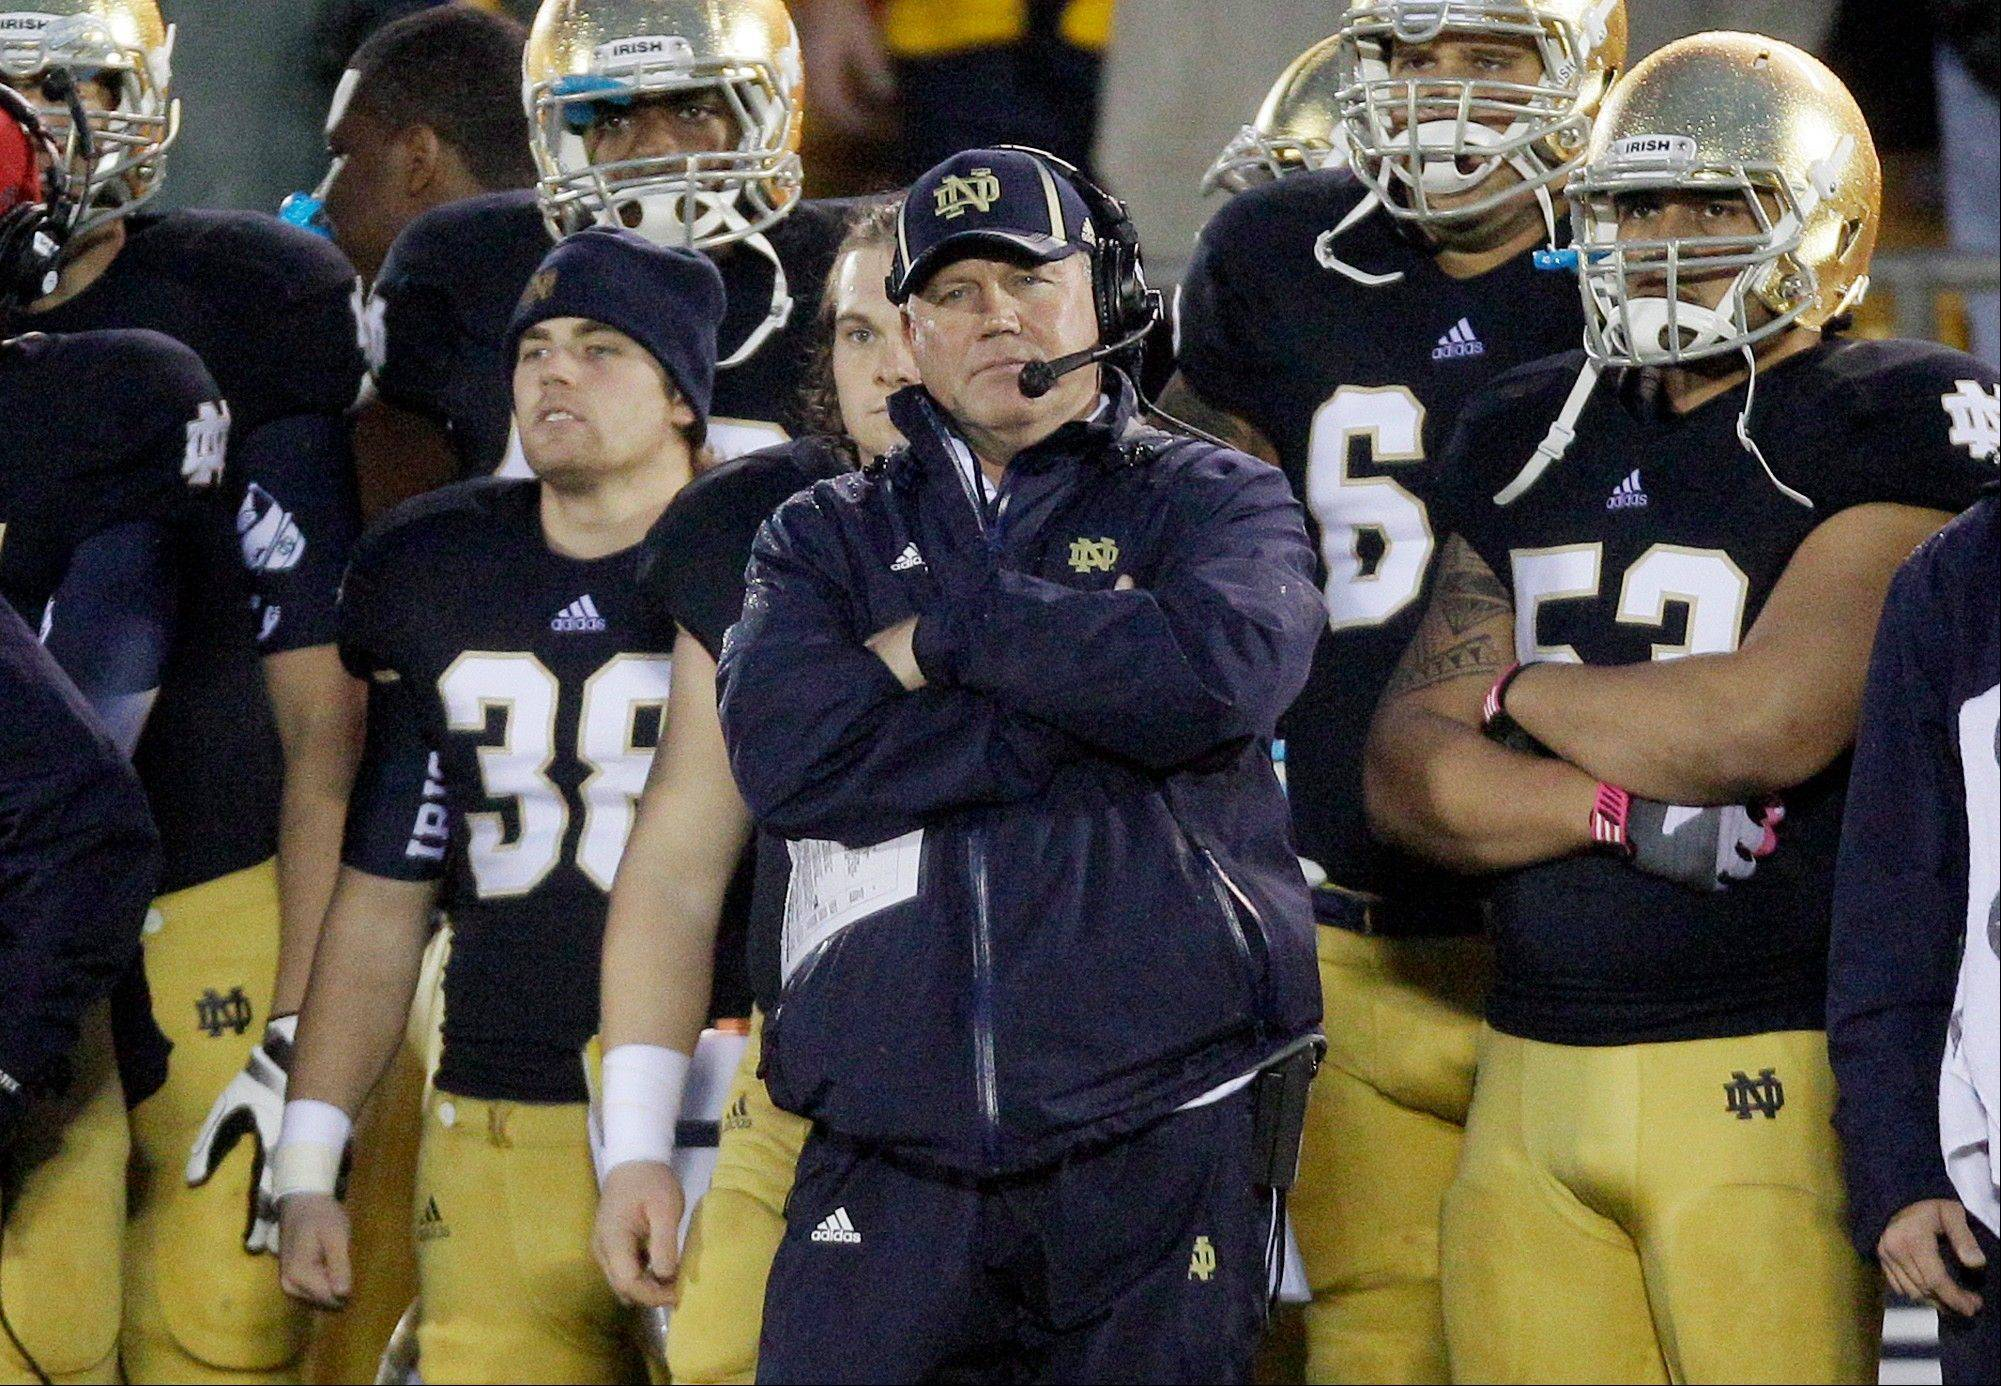 Notre Dame head coach Brian Kelly watches from the sideline during overtime of an NCAA college football game against Stanford in South Bend. Kelly says he doesn't believe third-ranked Notre Dame's season will be lessened if the Fighting Irish finish the season undefeated and don't win a national championship.